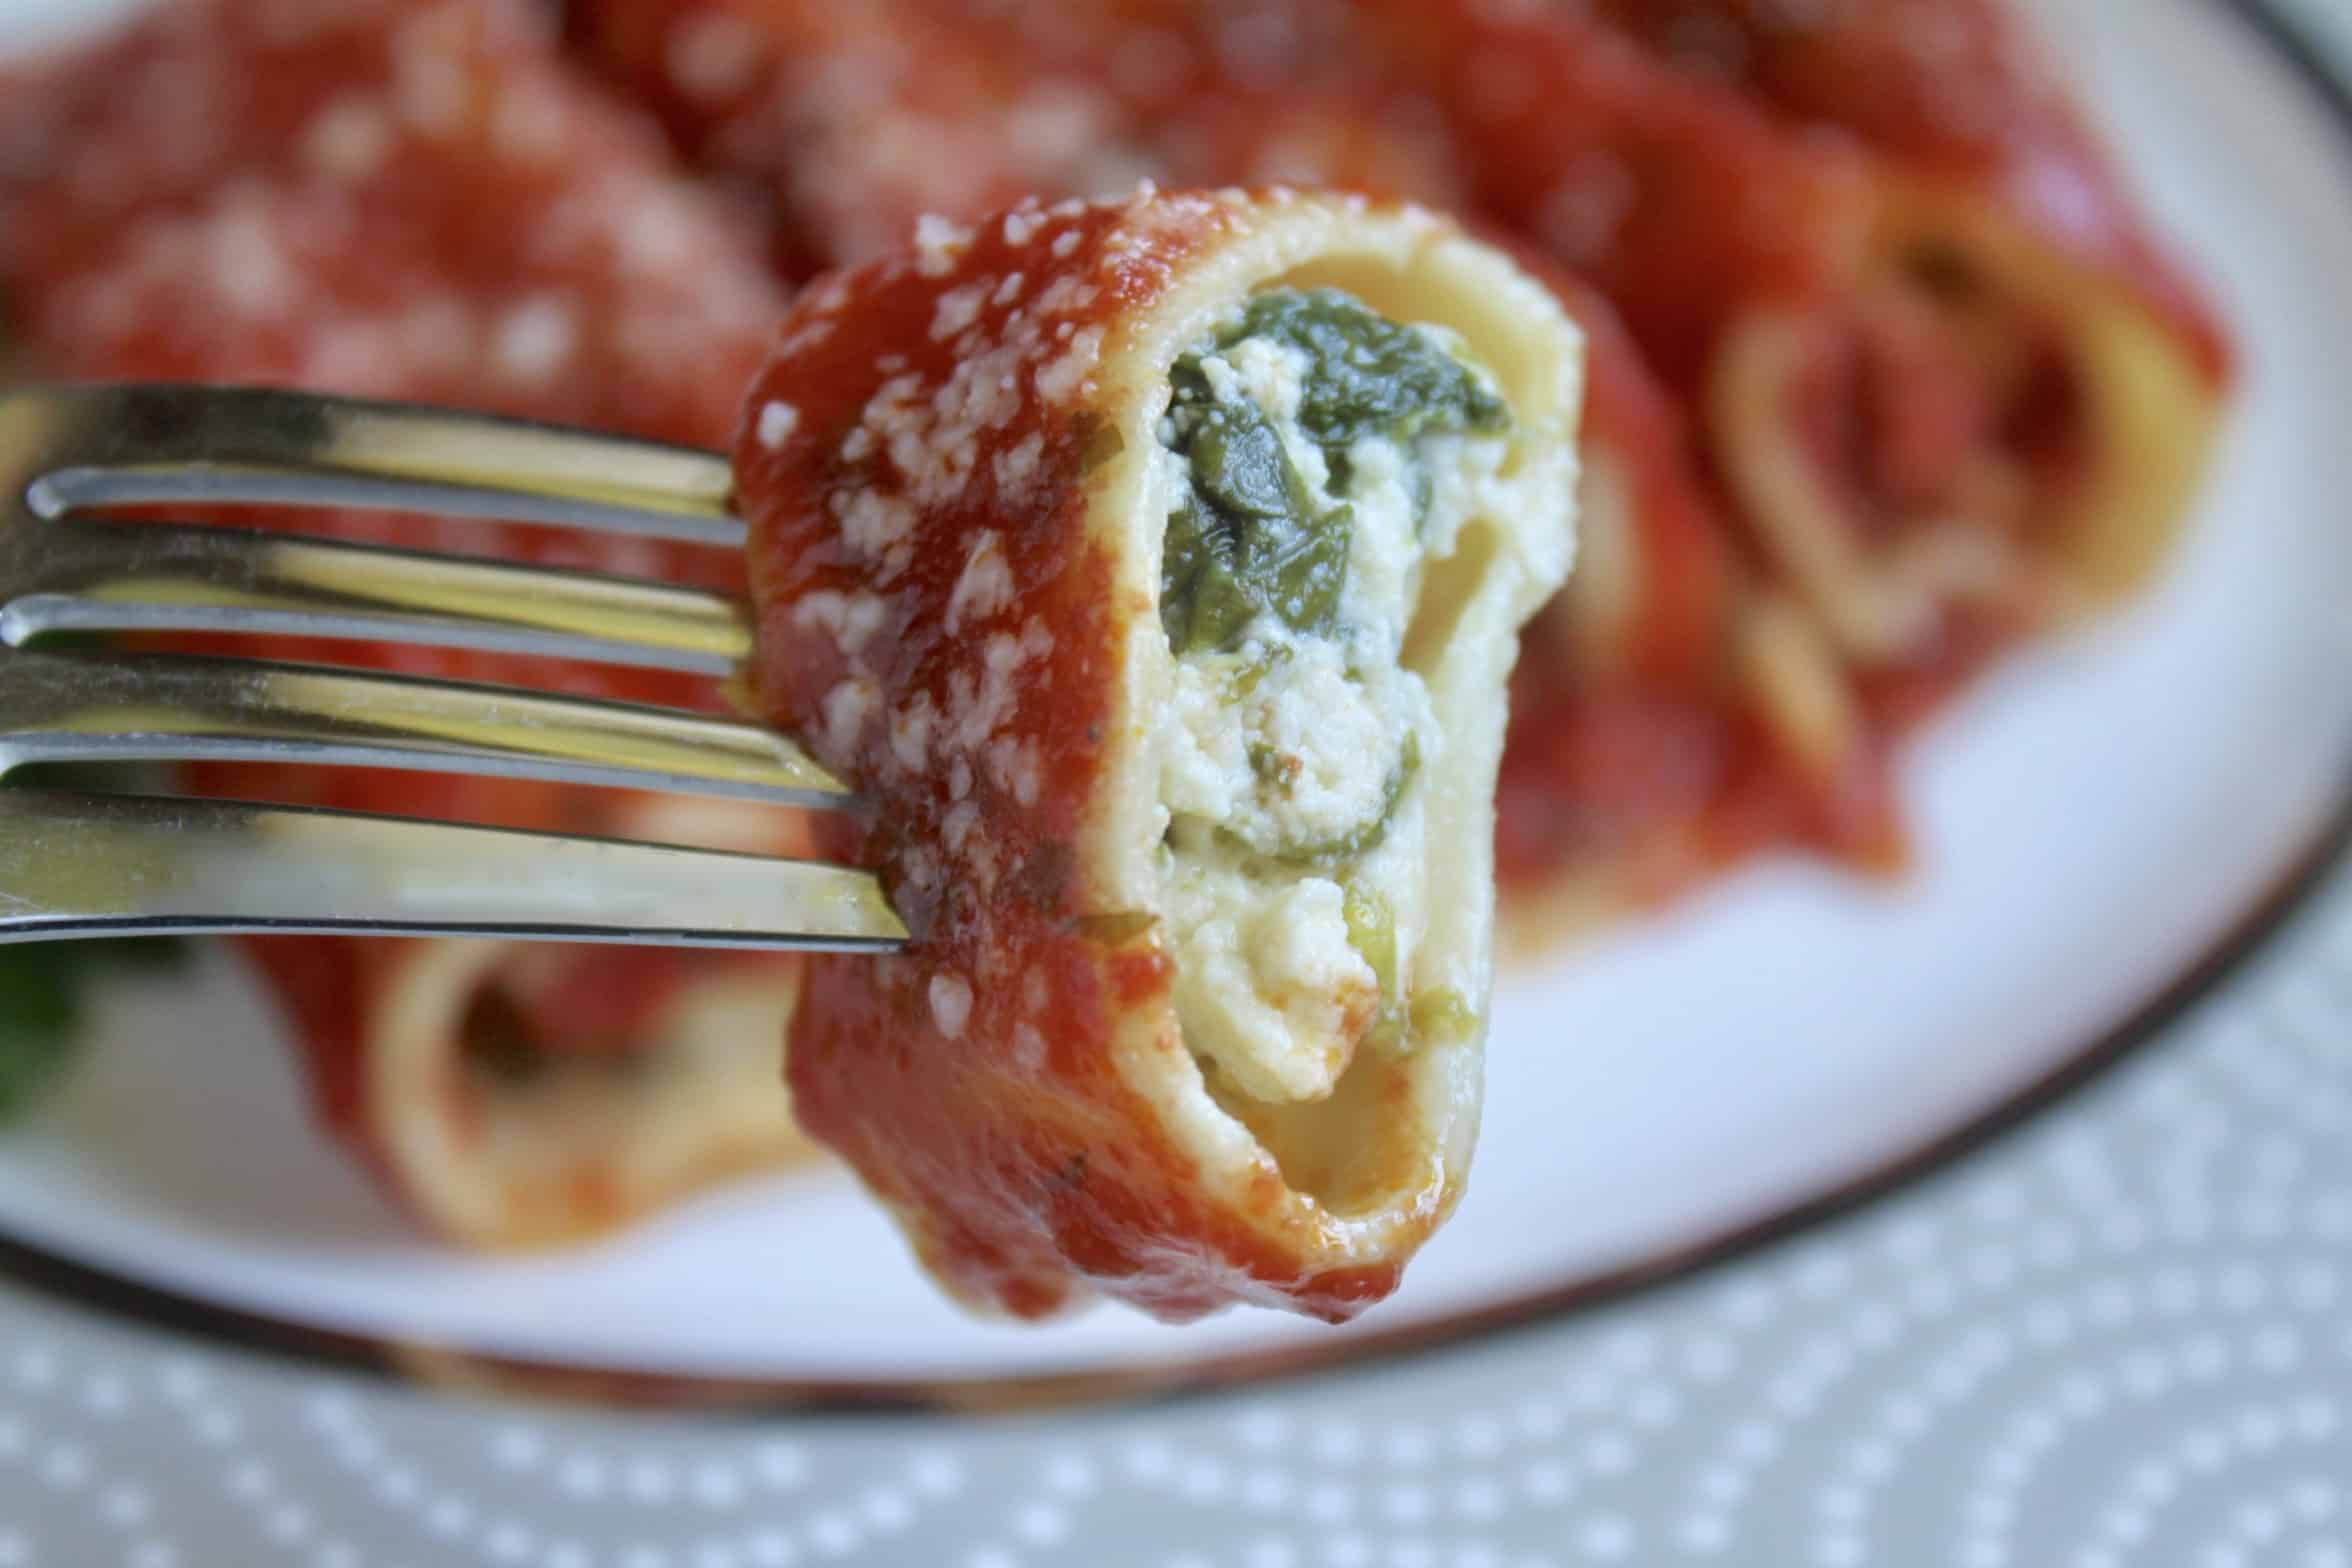 close up of a bite of manicotti on a fork